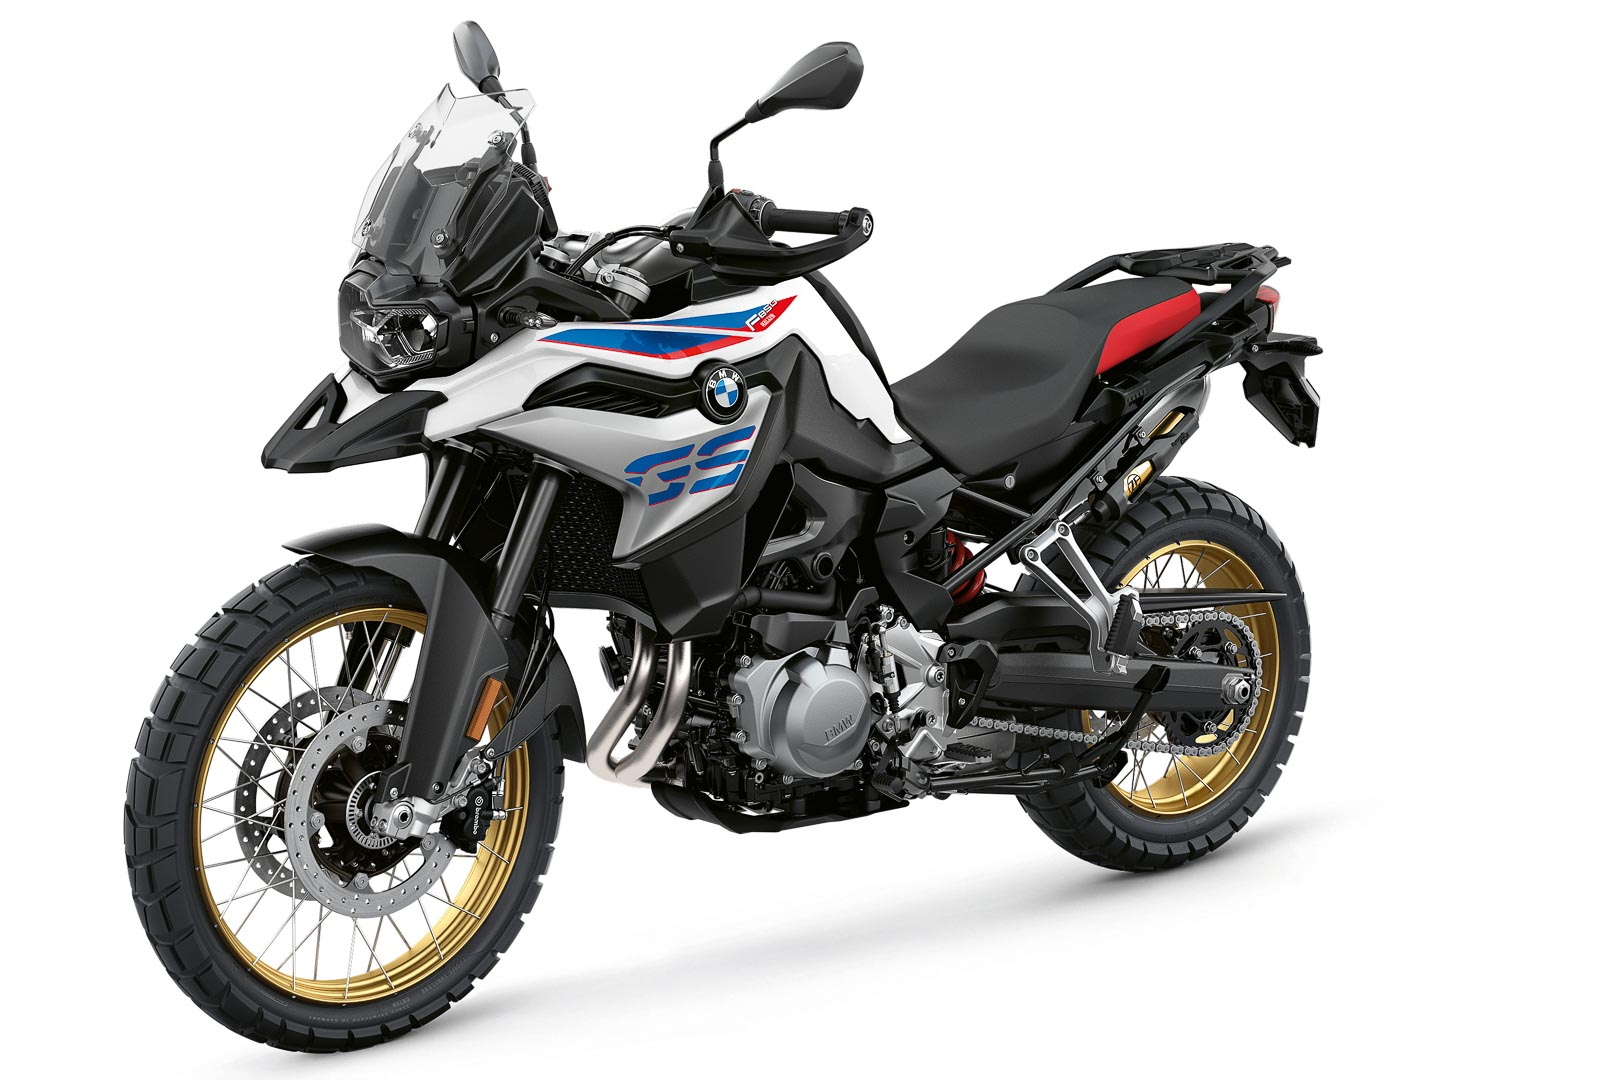 2020 BMW F 850 GS - Adventure Motorcycle